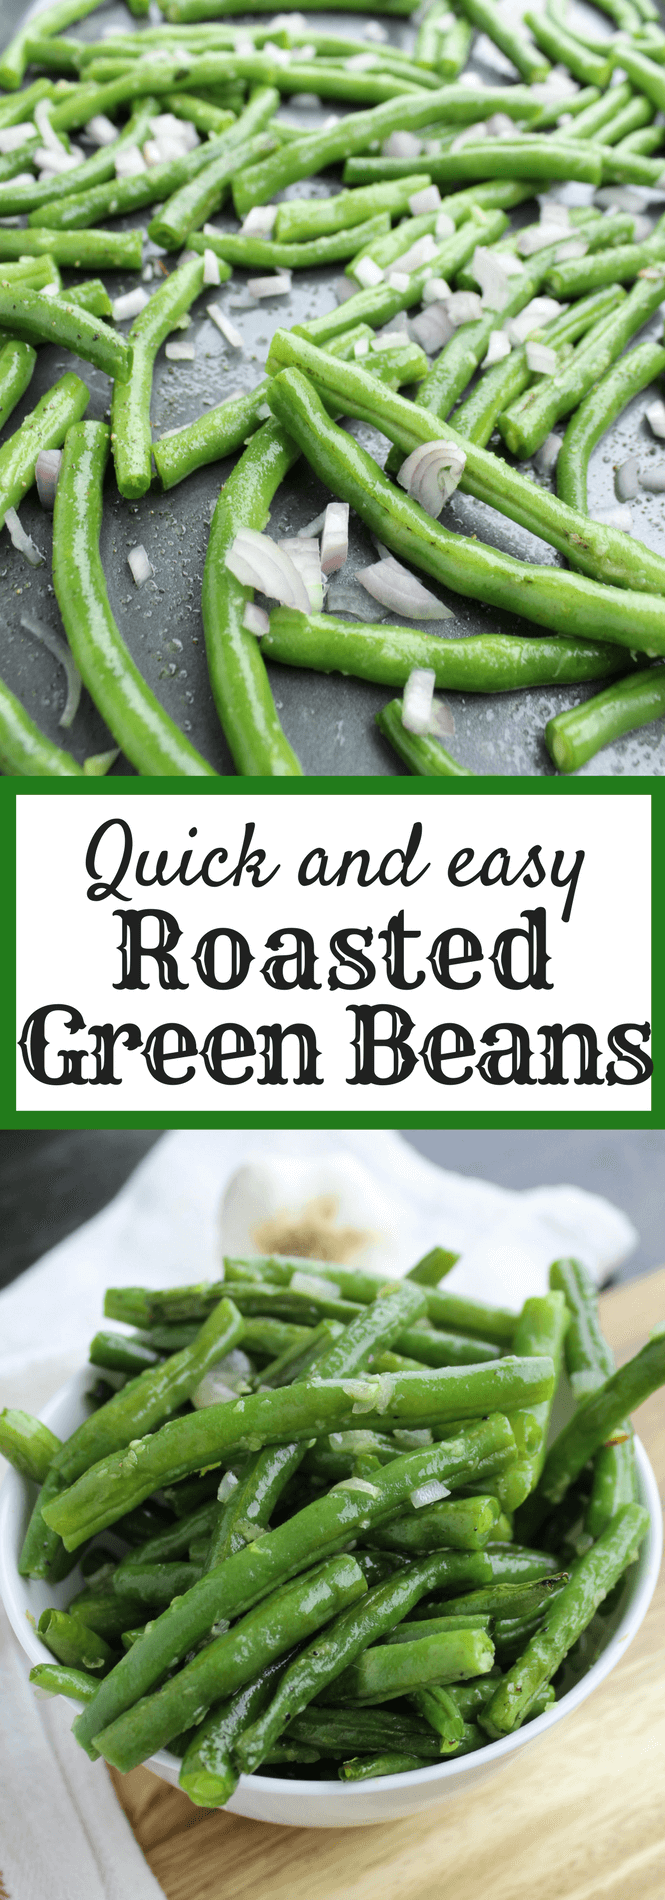 quick and easy roasted green beans